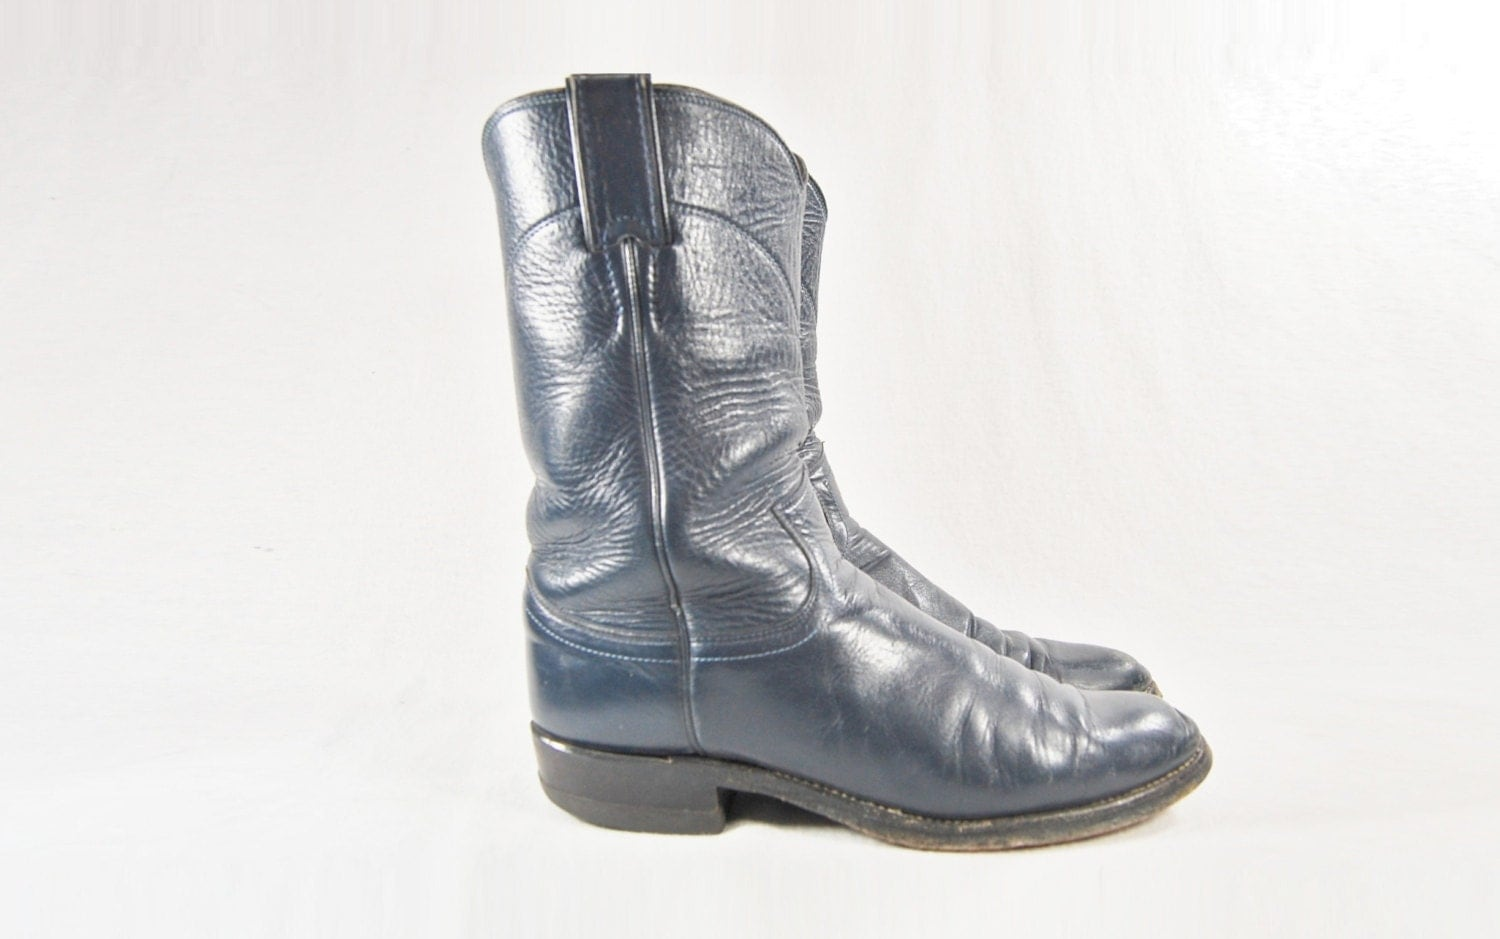 size 7 5 navy blue boots vintage justin boots